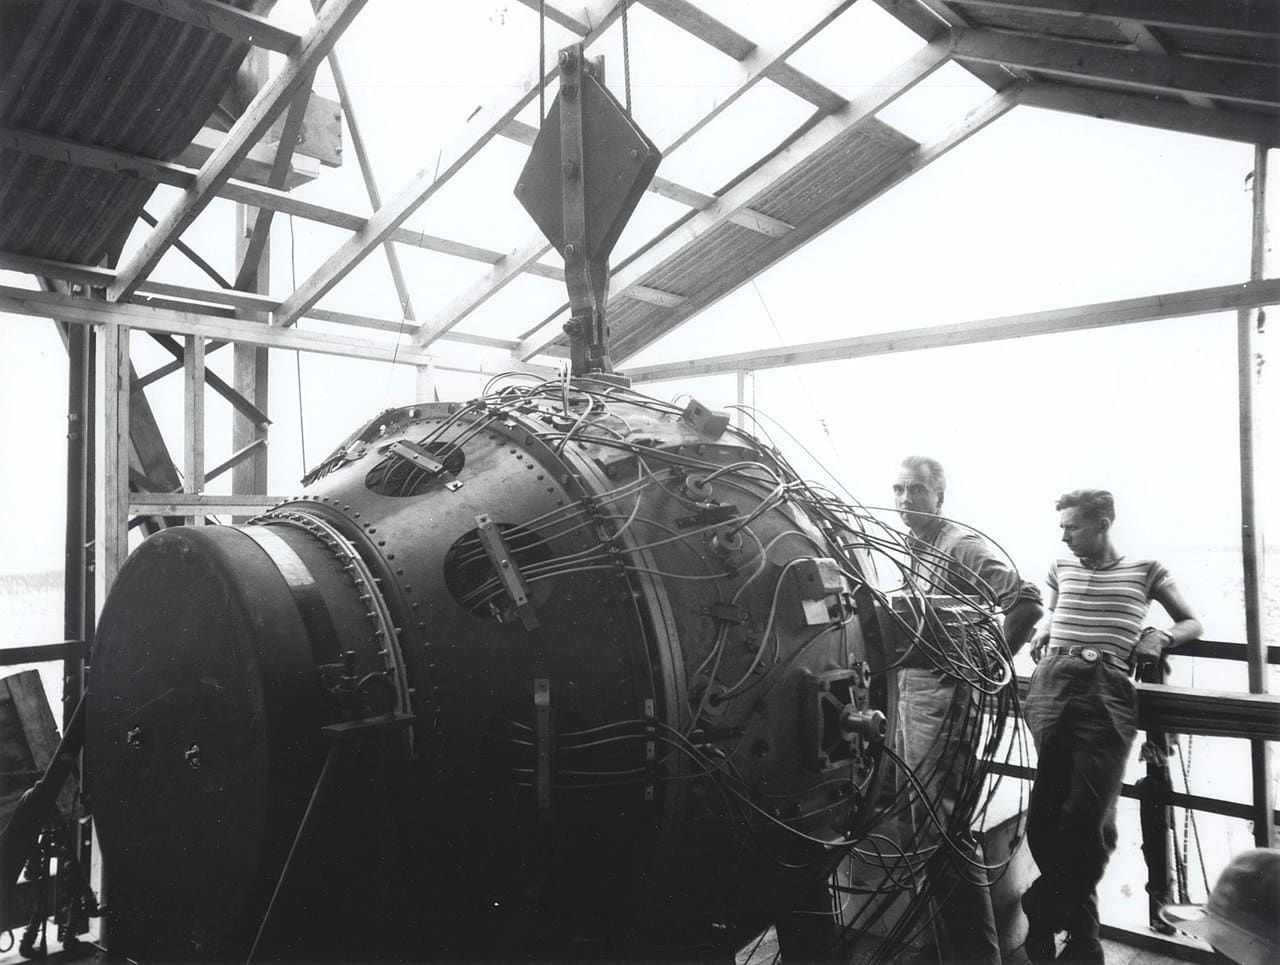 The Potsdam Conference - July 21st 1945 - The 'gadget' device in the Trinity Test Site tower awaiting detonation (pictured on July 15th 1945, one day before its successful use)/Image: Los Alamos National Laboratory